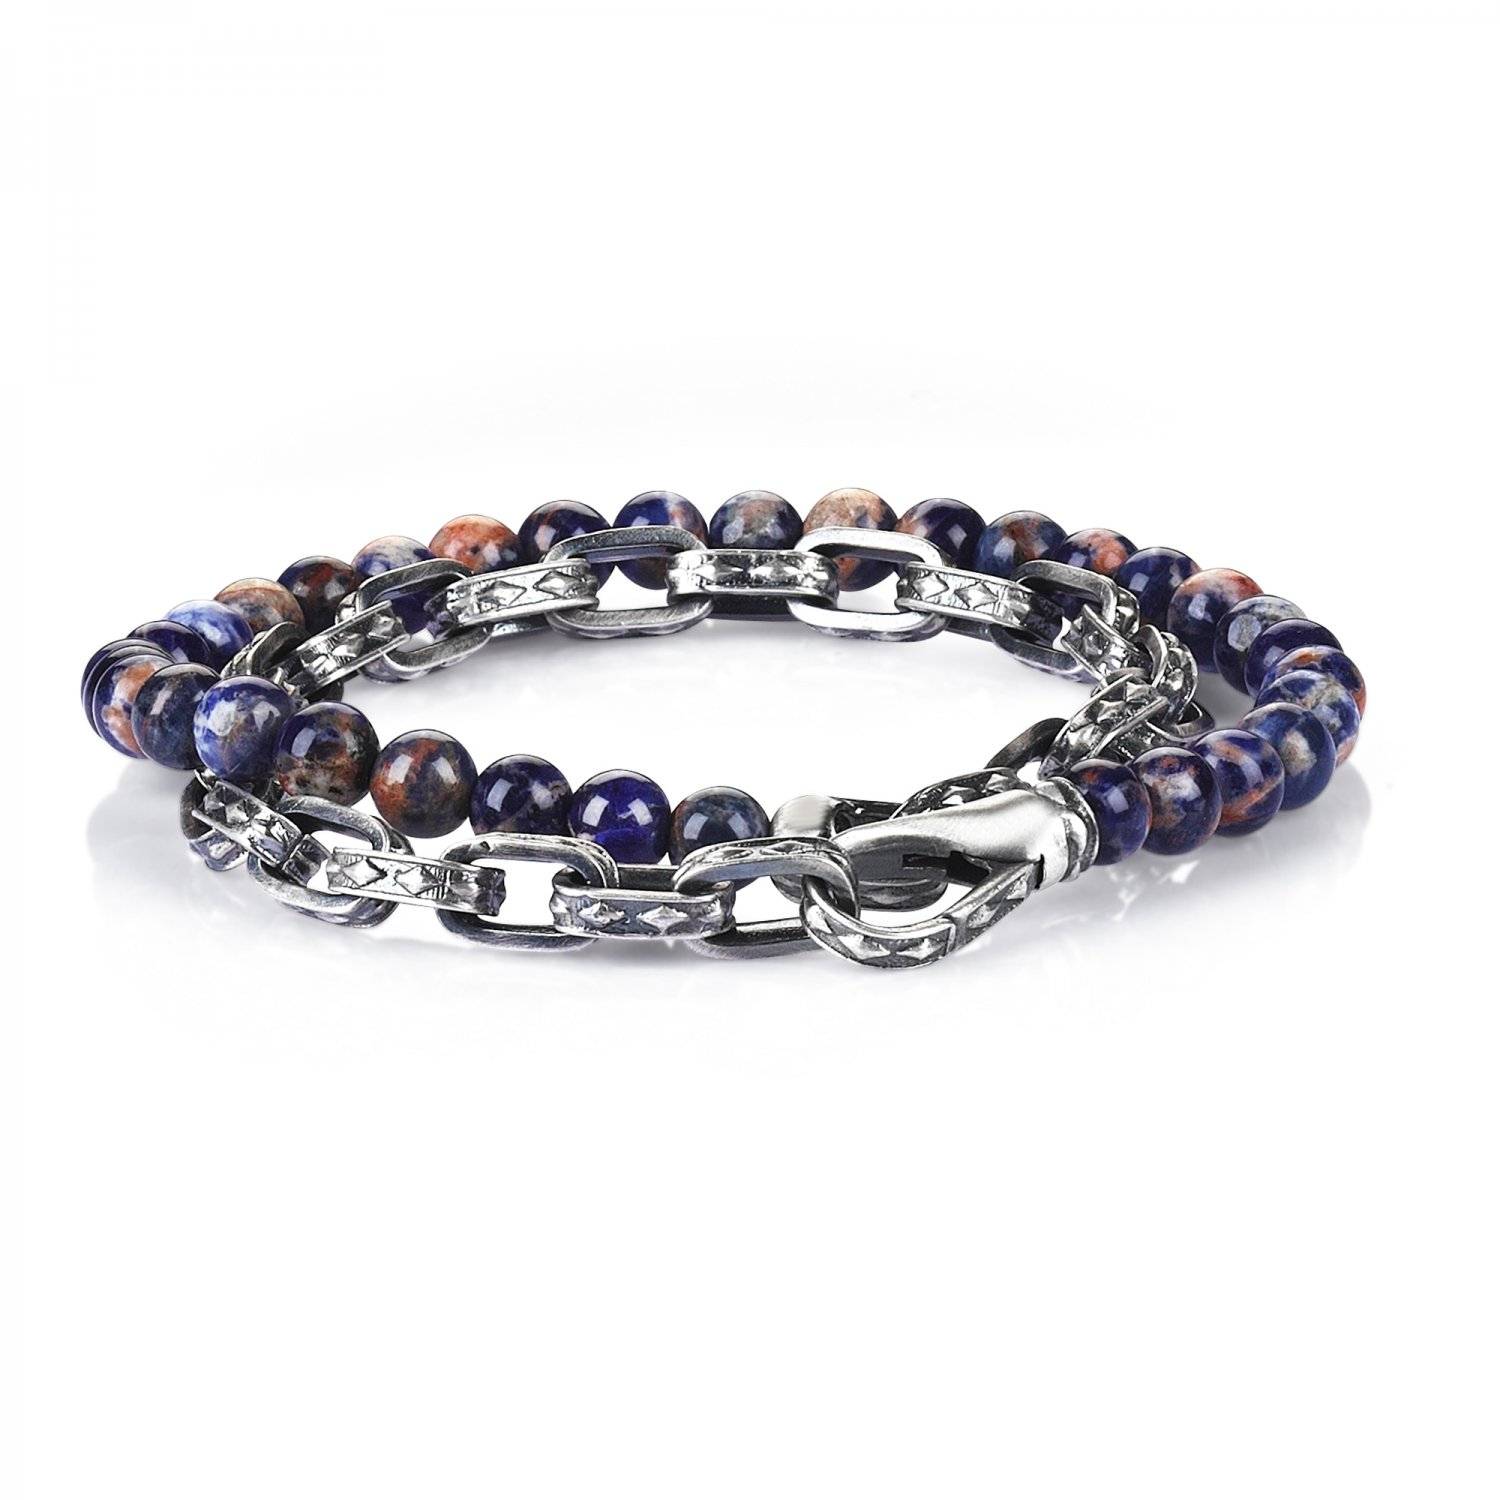 Oxidised Silver Cubic Chain Bracelet with Bolivian Sodalite Beads, 6.00mm